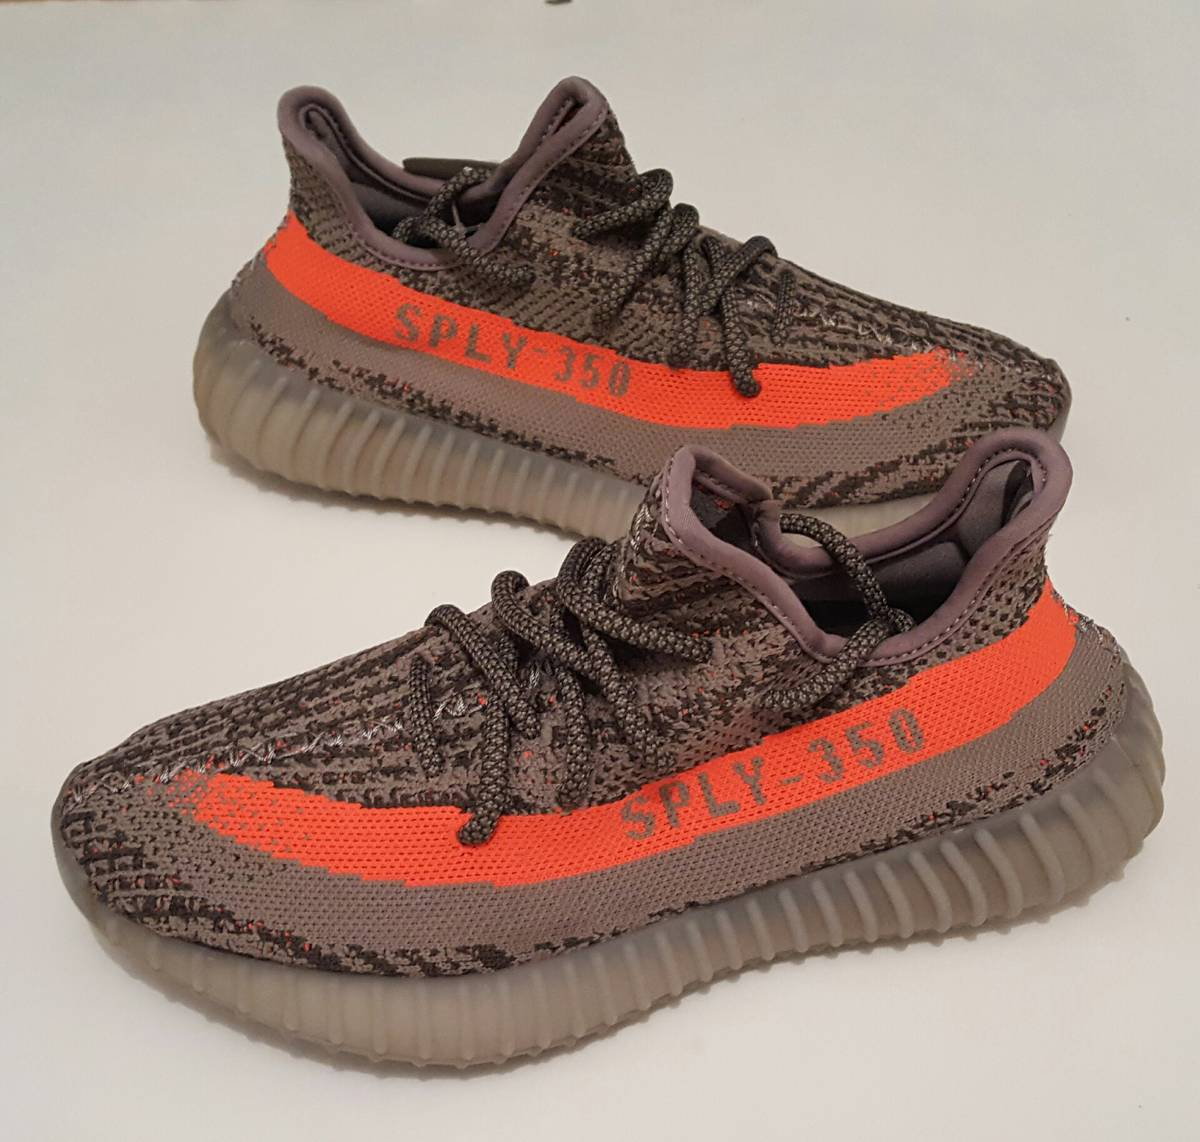 Adidas Yeezy Boost 350 V2 us 6 / 38.5 eu - photo 1/5